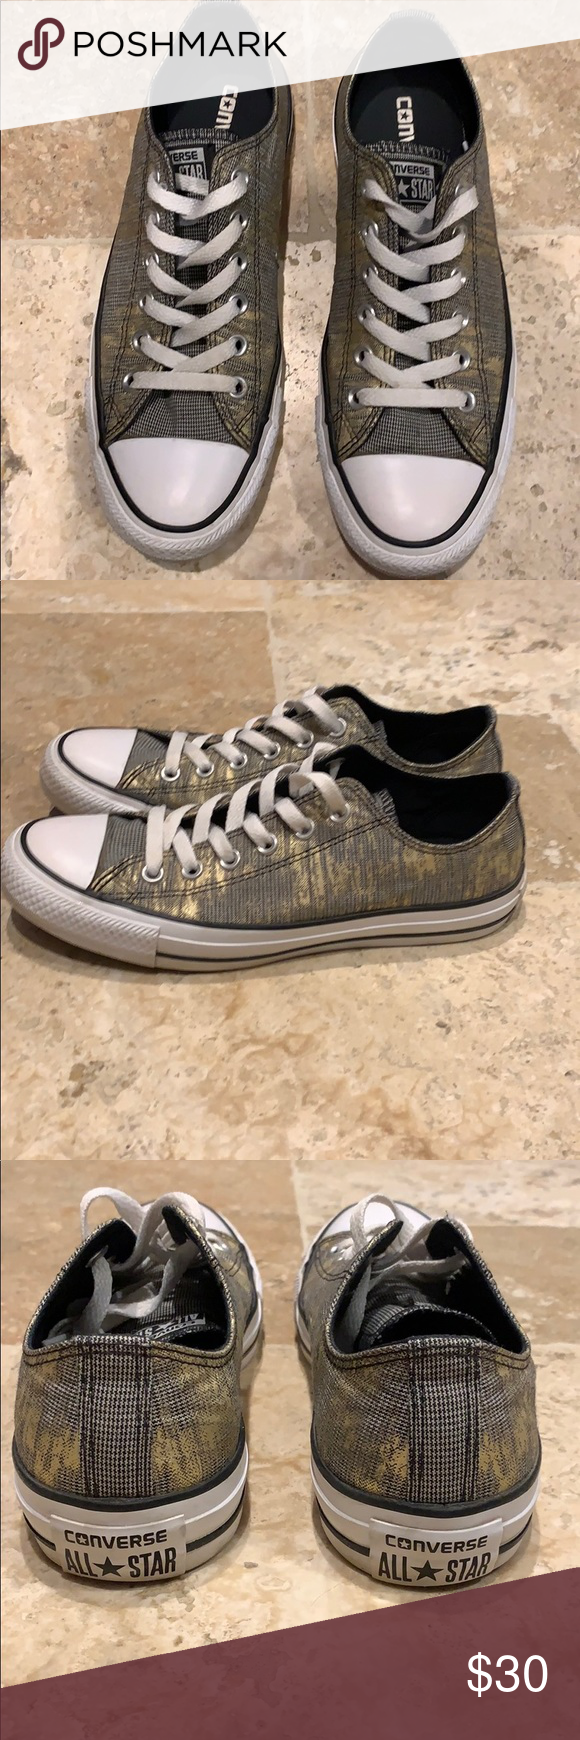 beebb7451174 I just added this listing on Poshmark  Converse Classic Low Top Chuck  Taylor s.  shopmycloset  poshmark  fashion  shopping  style  forsale   Converse  Shoes